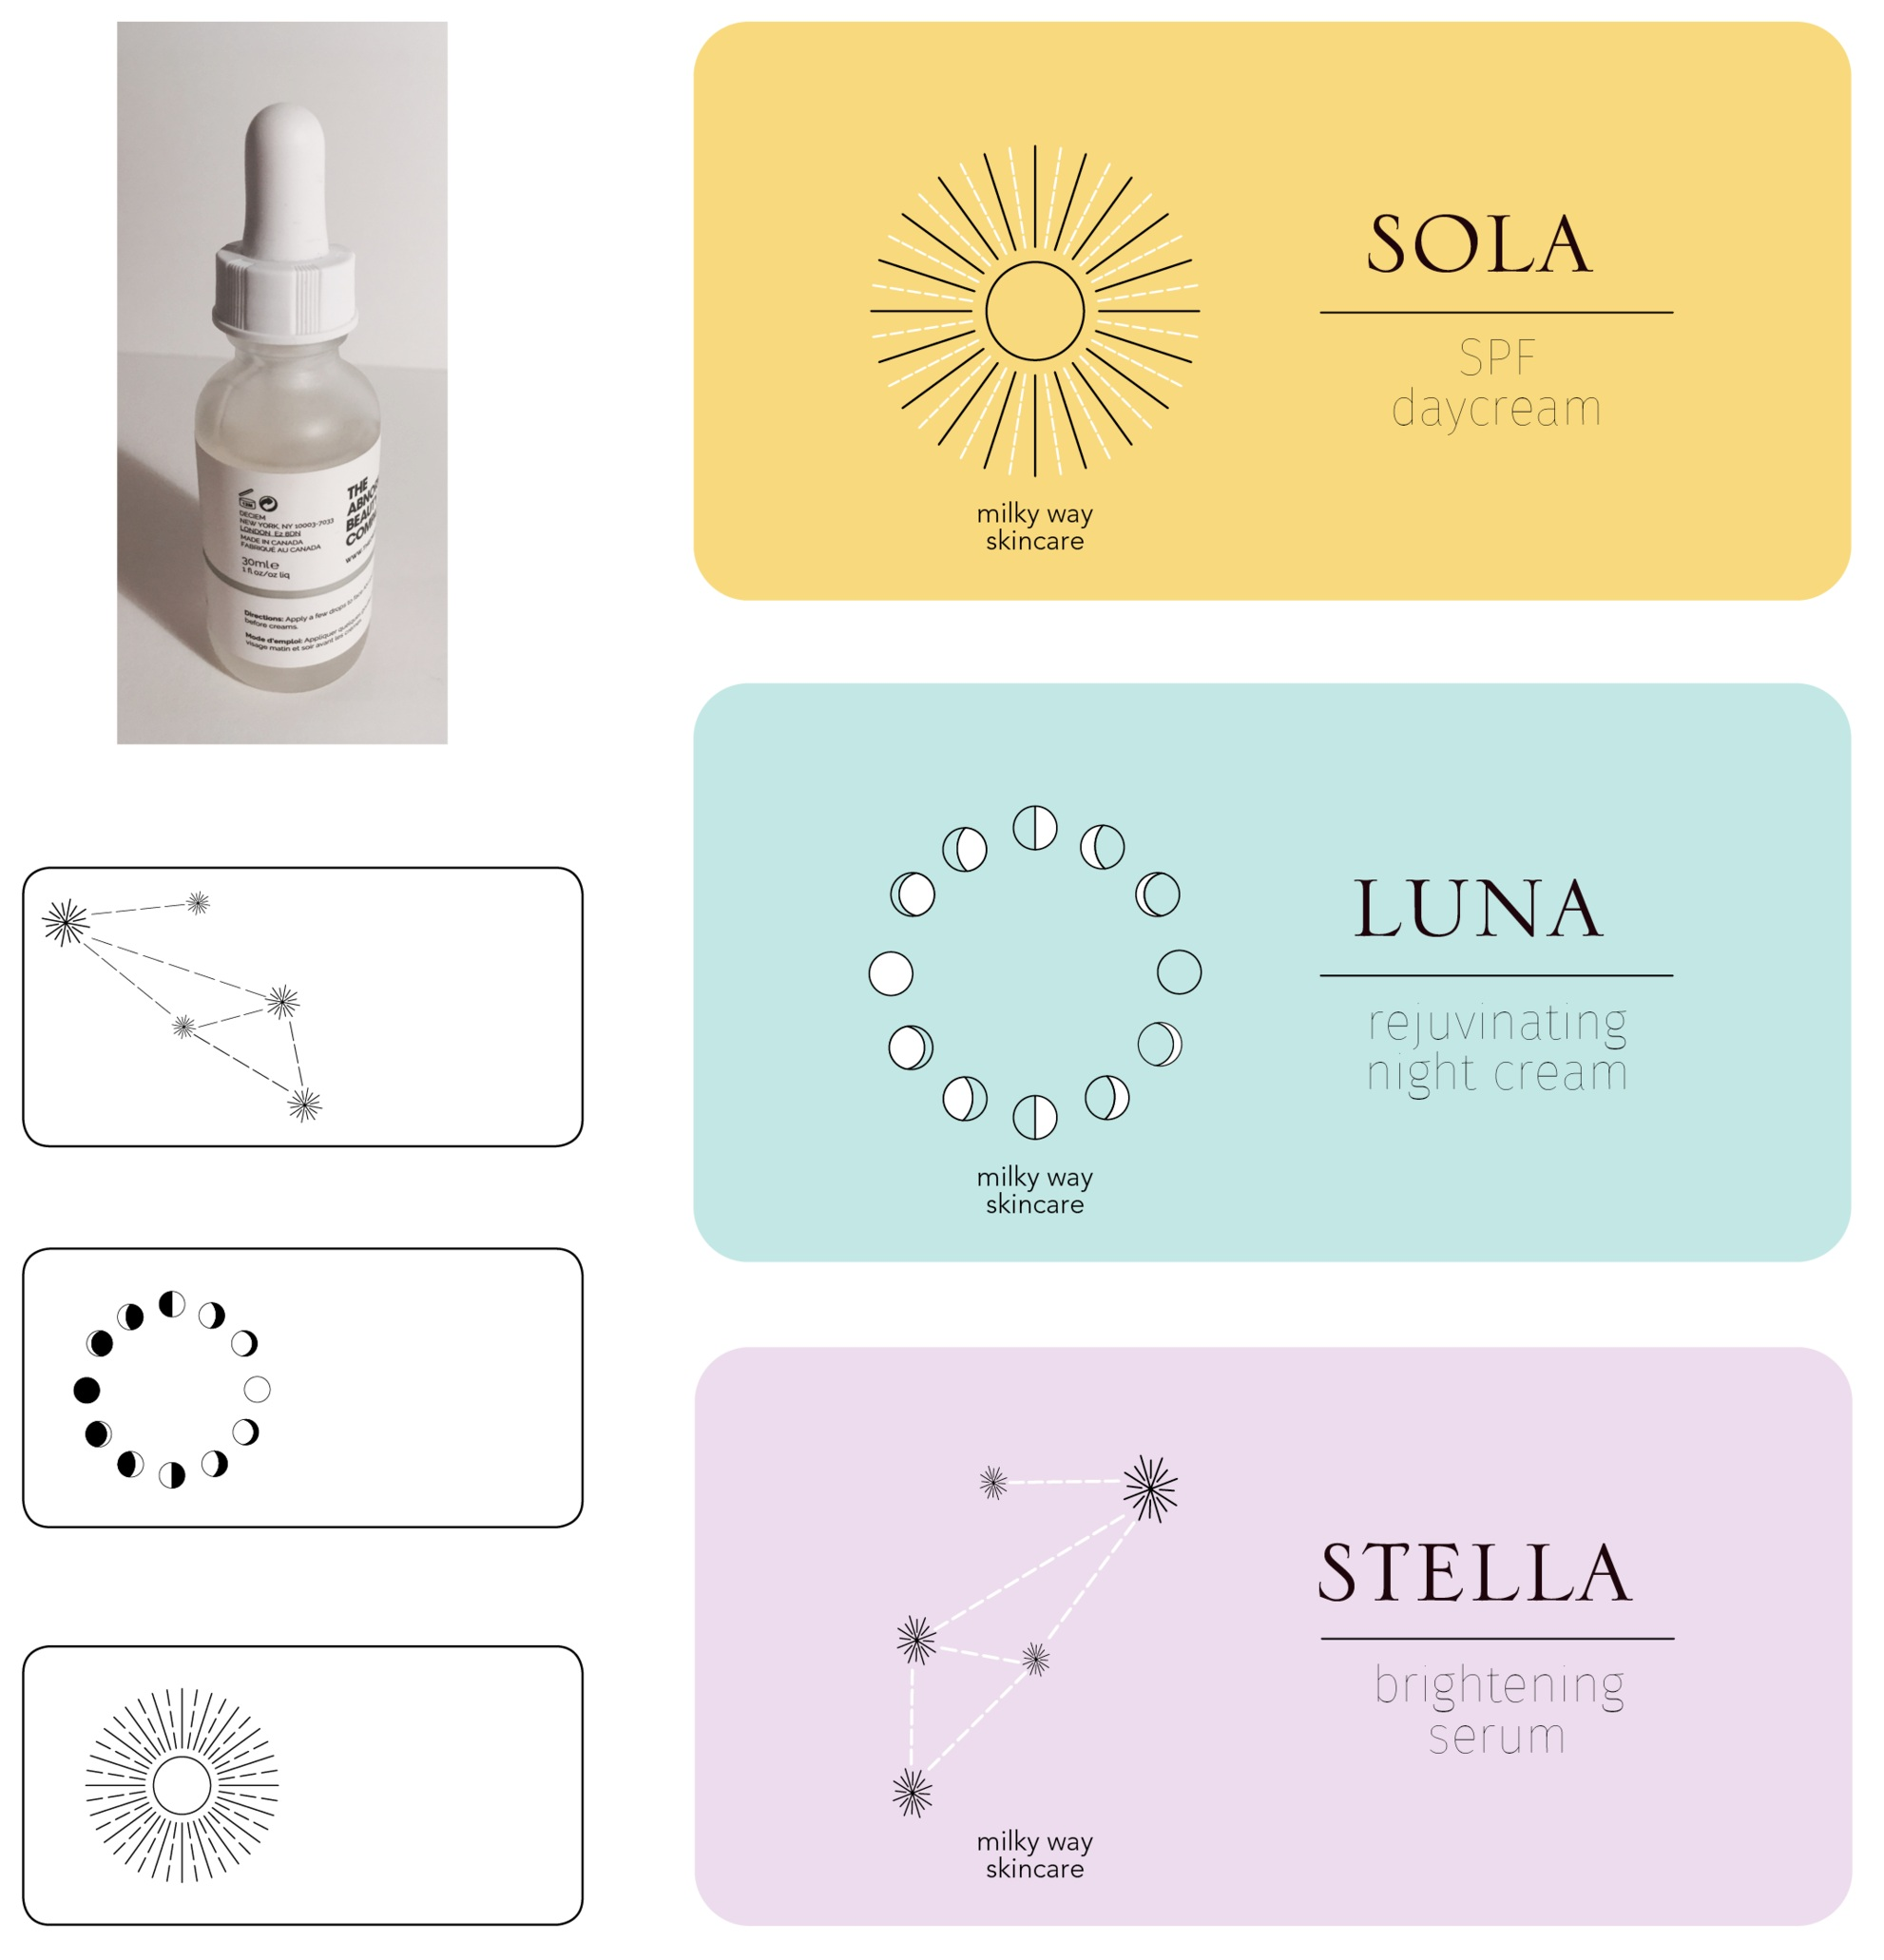 luna+packaging++for+web+6.jpg